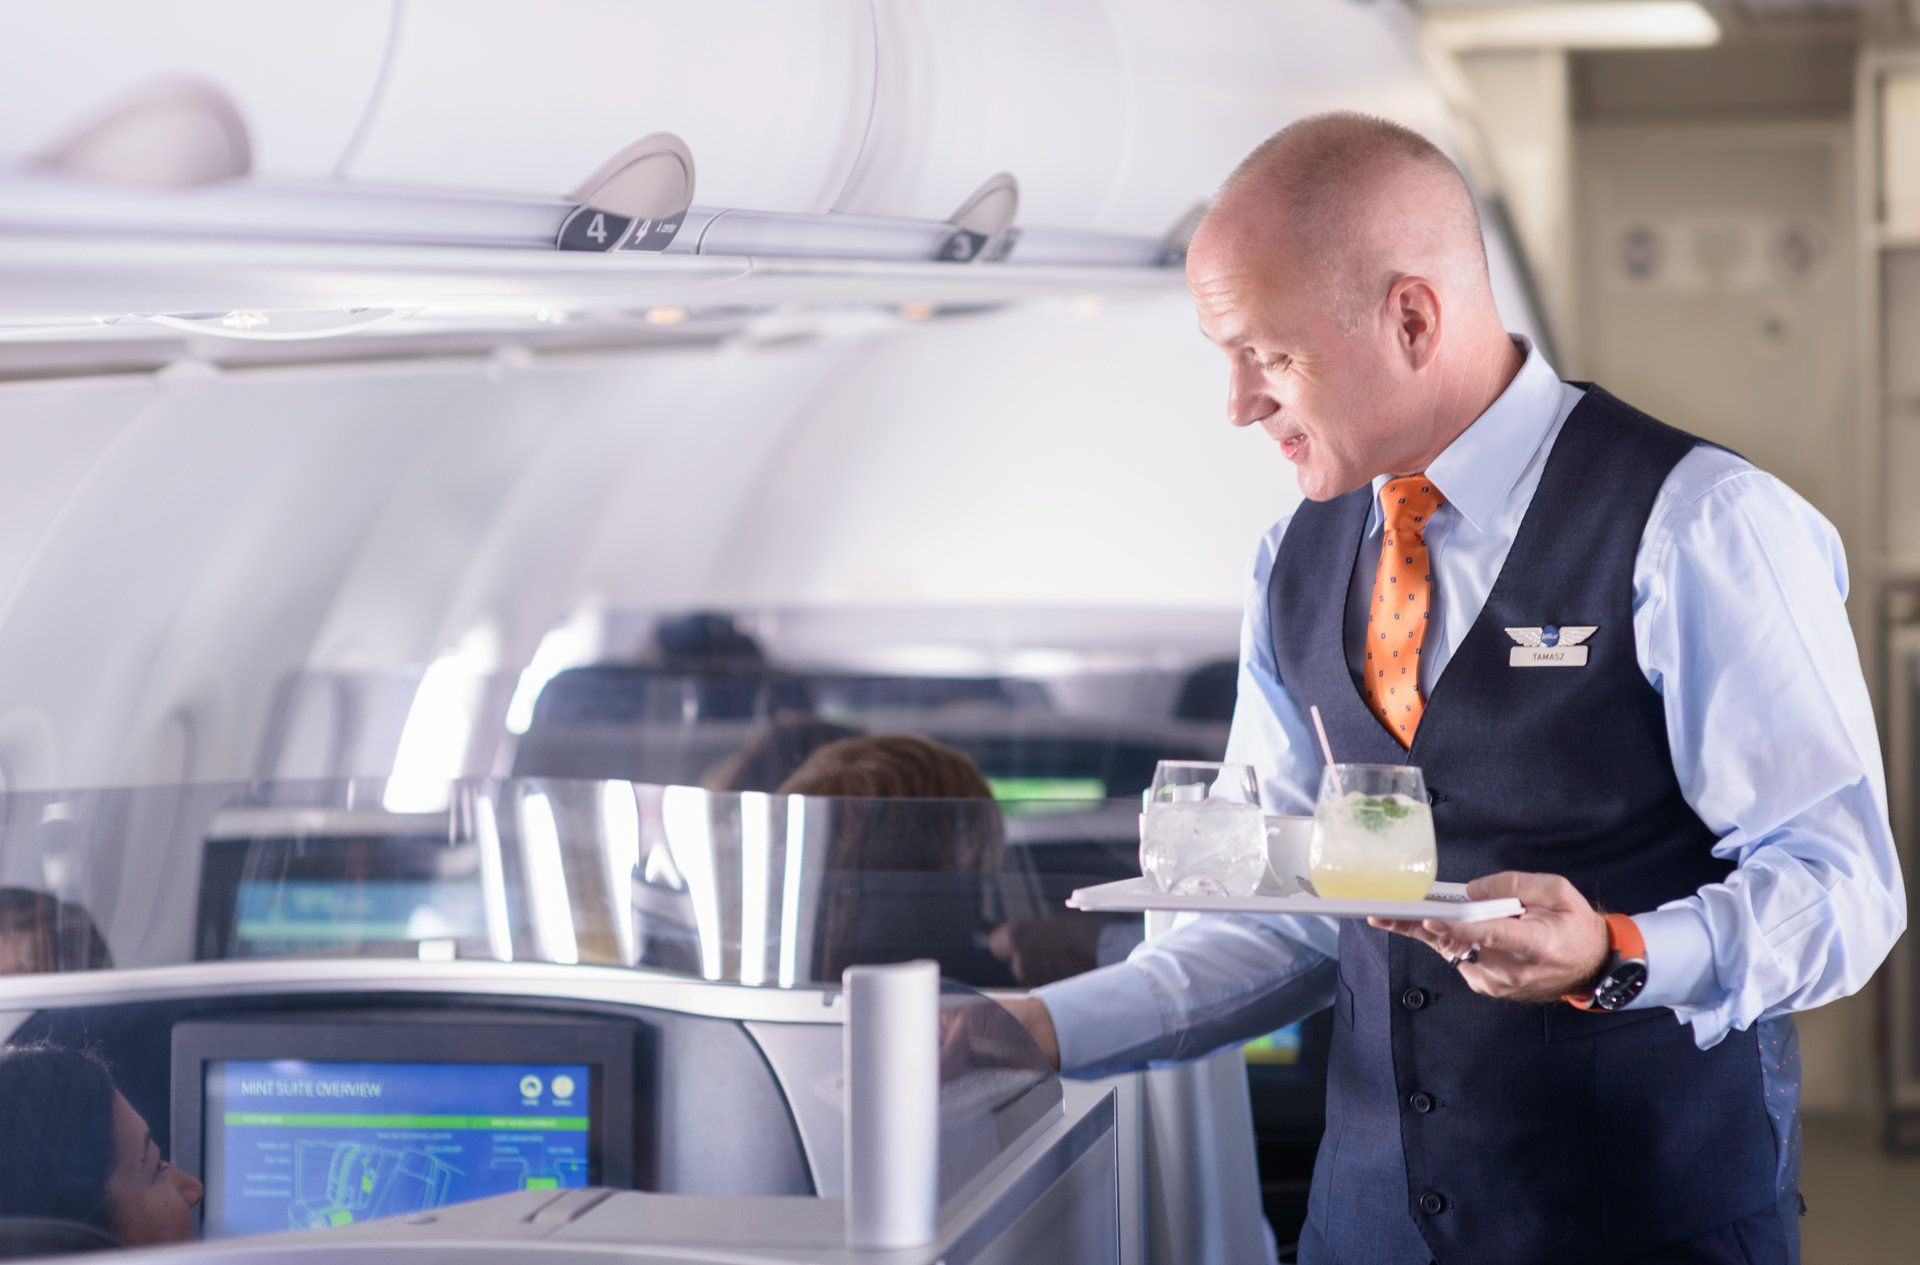 Enjoy upgraded service and comfortable seating in JetBlue Mint using FoundersCard. (JetBlue)